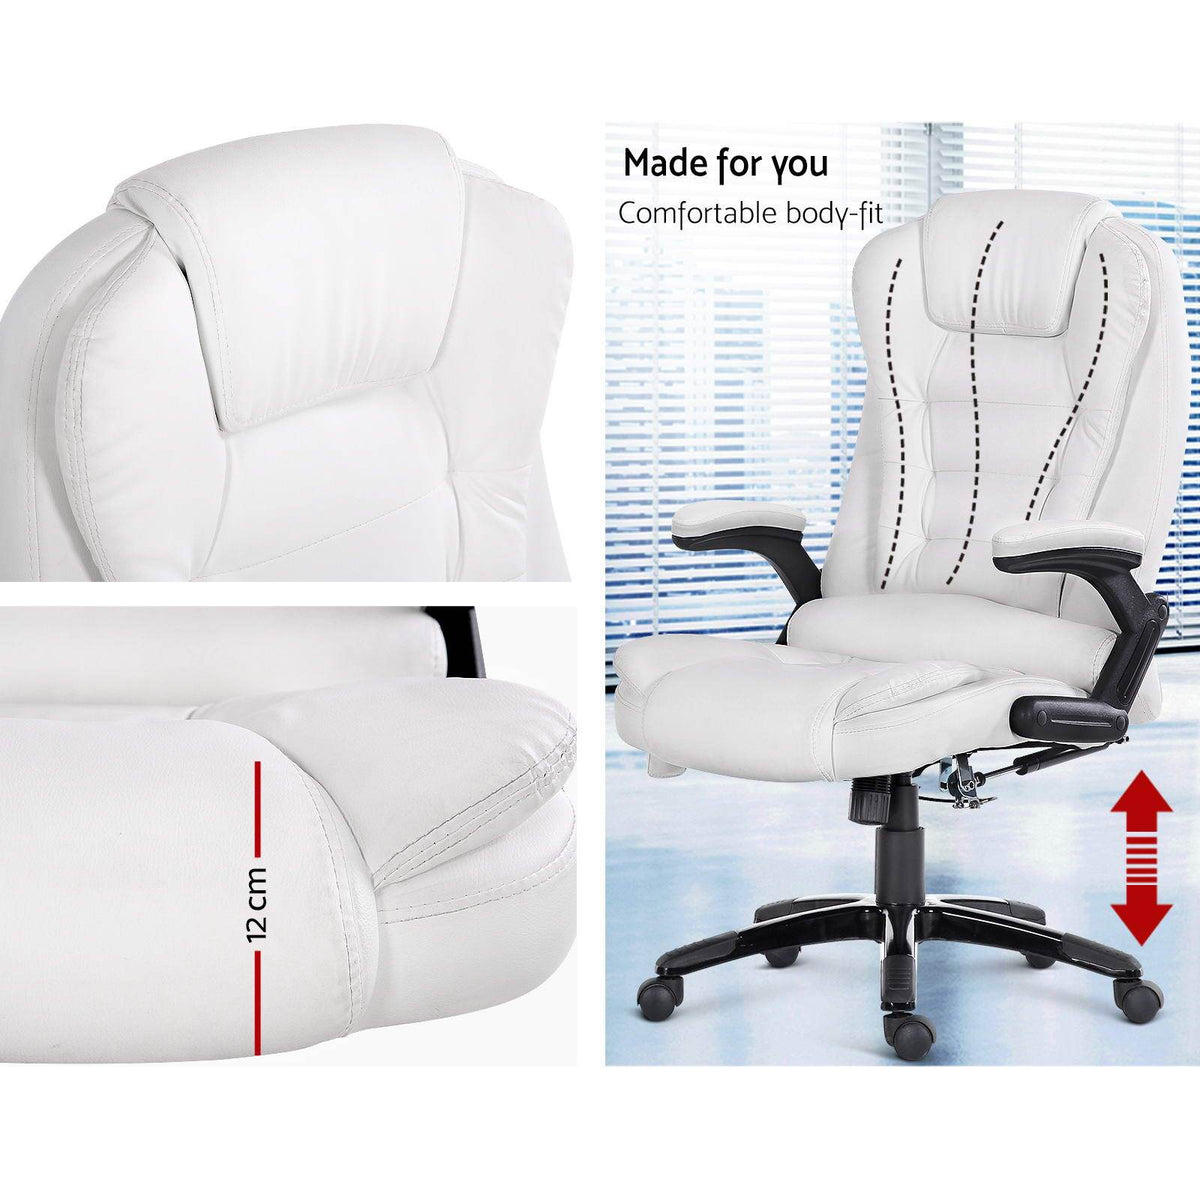 8 Point PU Leather Reclining Massage Chair - White - Evopia